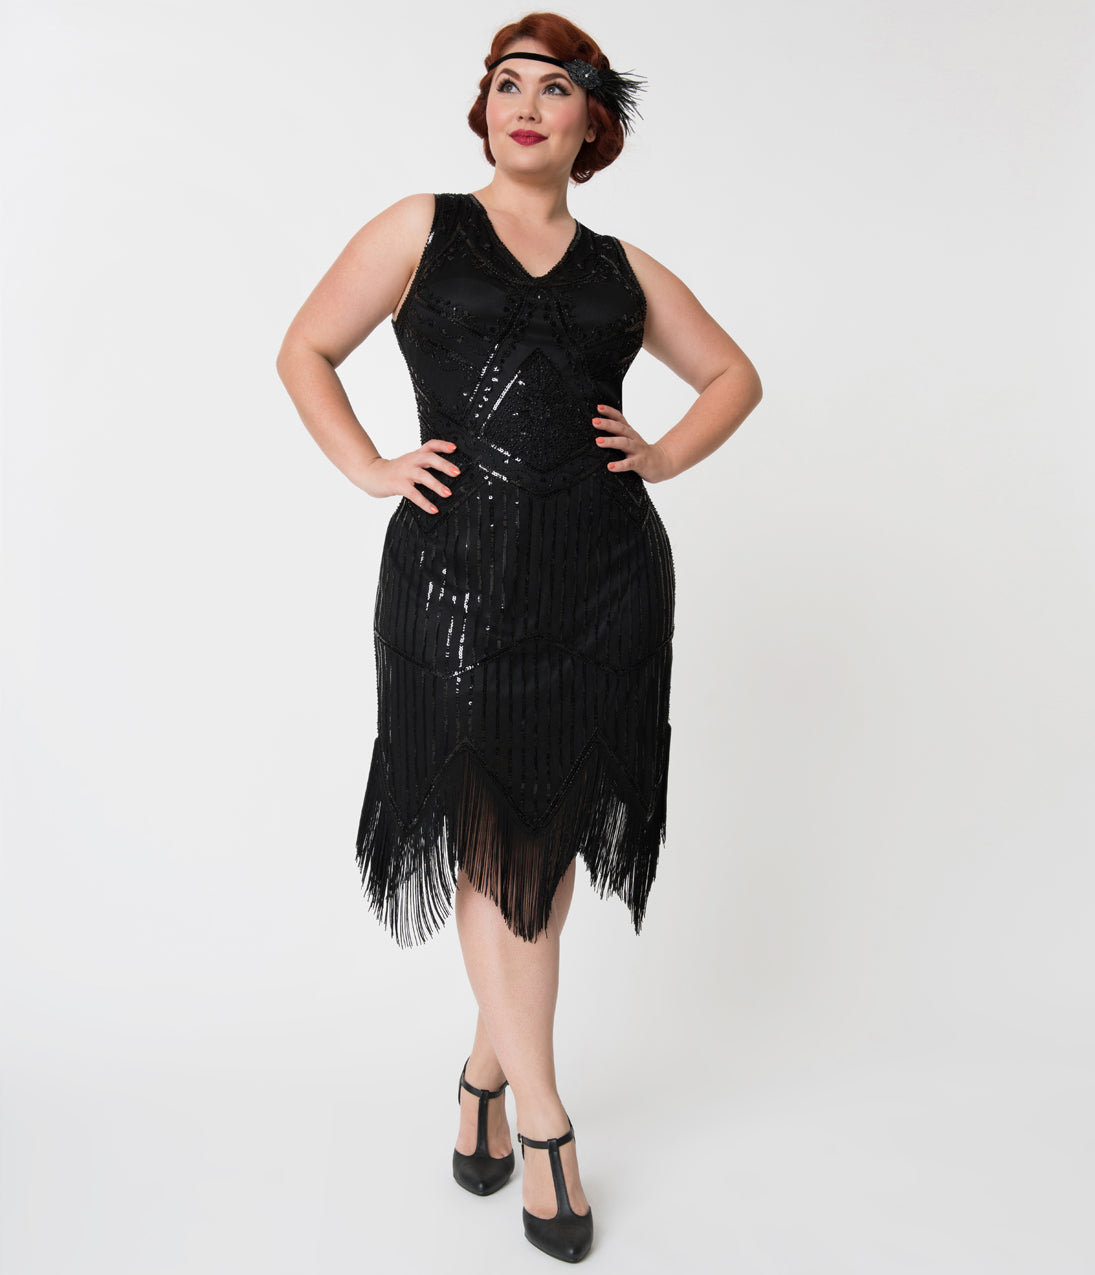 1920s Costumes: Flapper, Great Gatsby, Gangster Girl Unique Vintage Plus Size 1920S Black Beaded Sequin Juliette Fringe Flapper Dress $68.00 AT vintagedancer.com